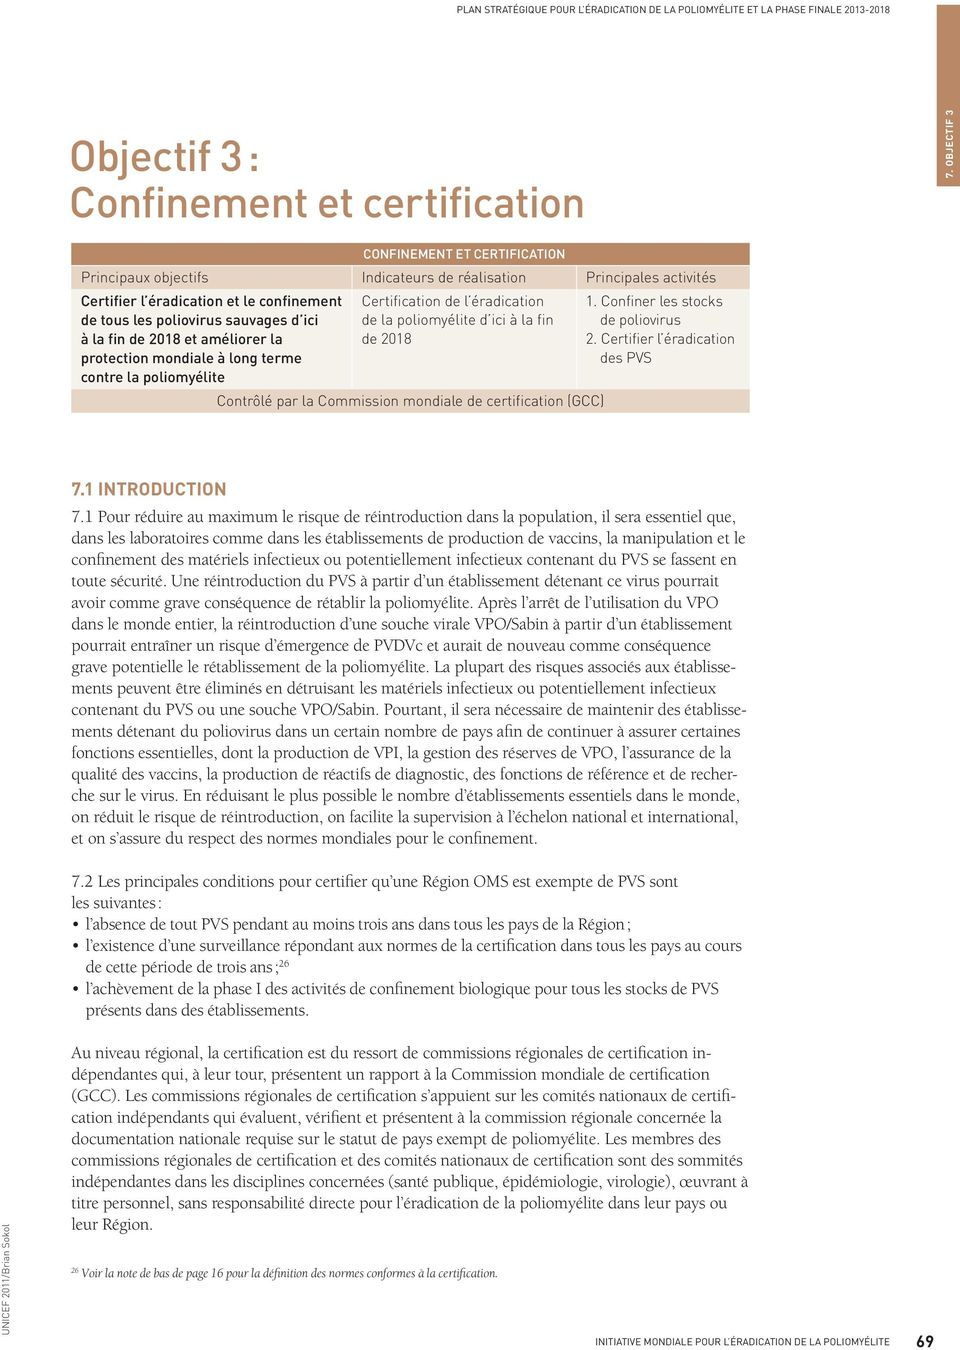 Confiner les stocks de poliovirus 2. Certifier l éradication des PVS Contrôlé par la Commission mondiale de certification (GCC) 7.1 INTRODUCTION 7.